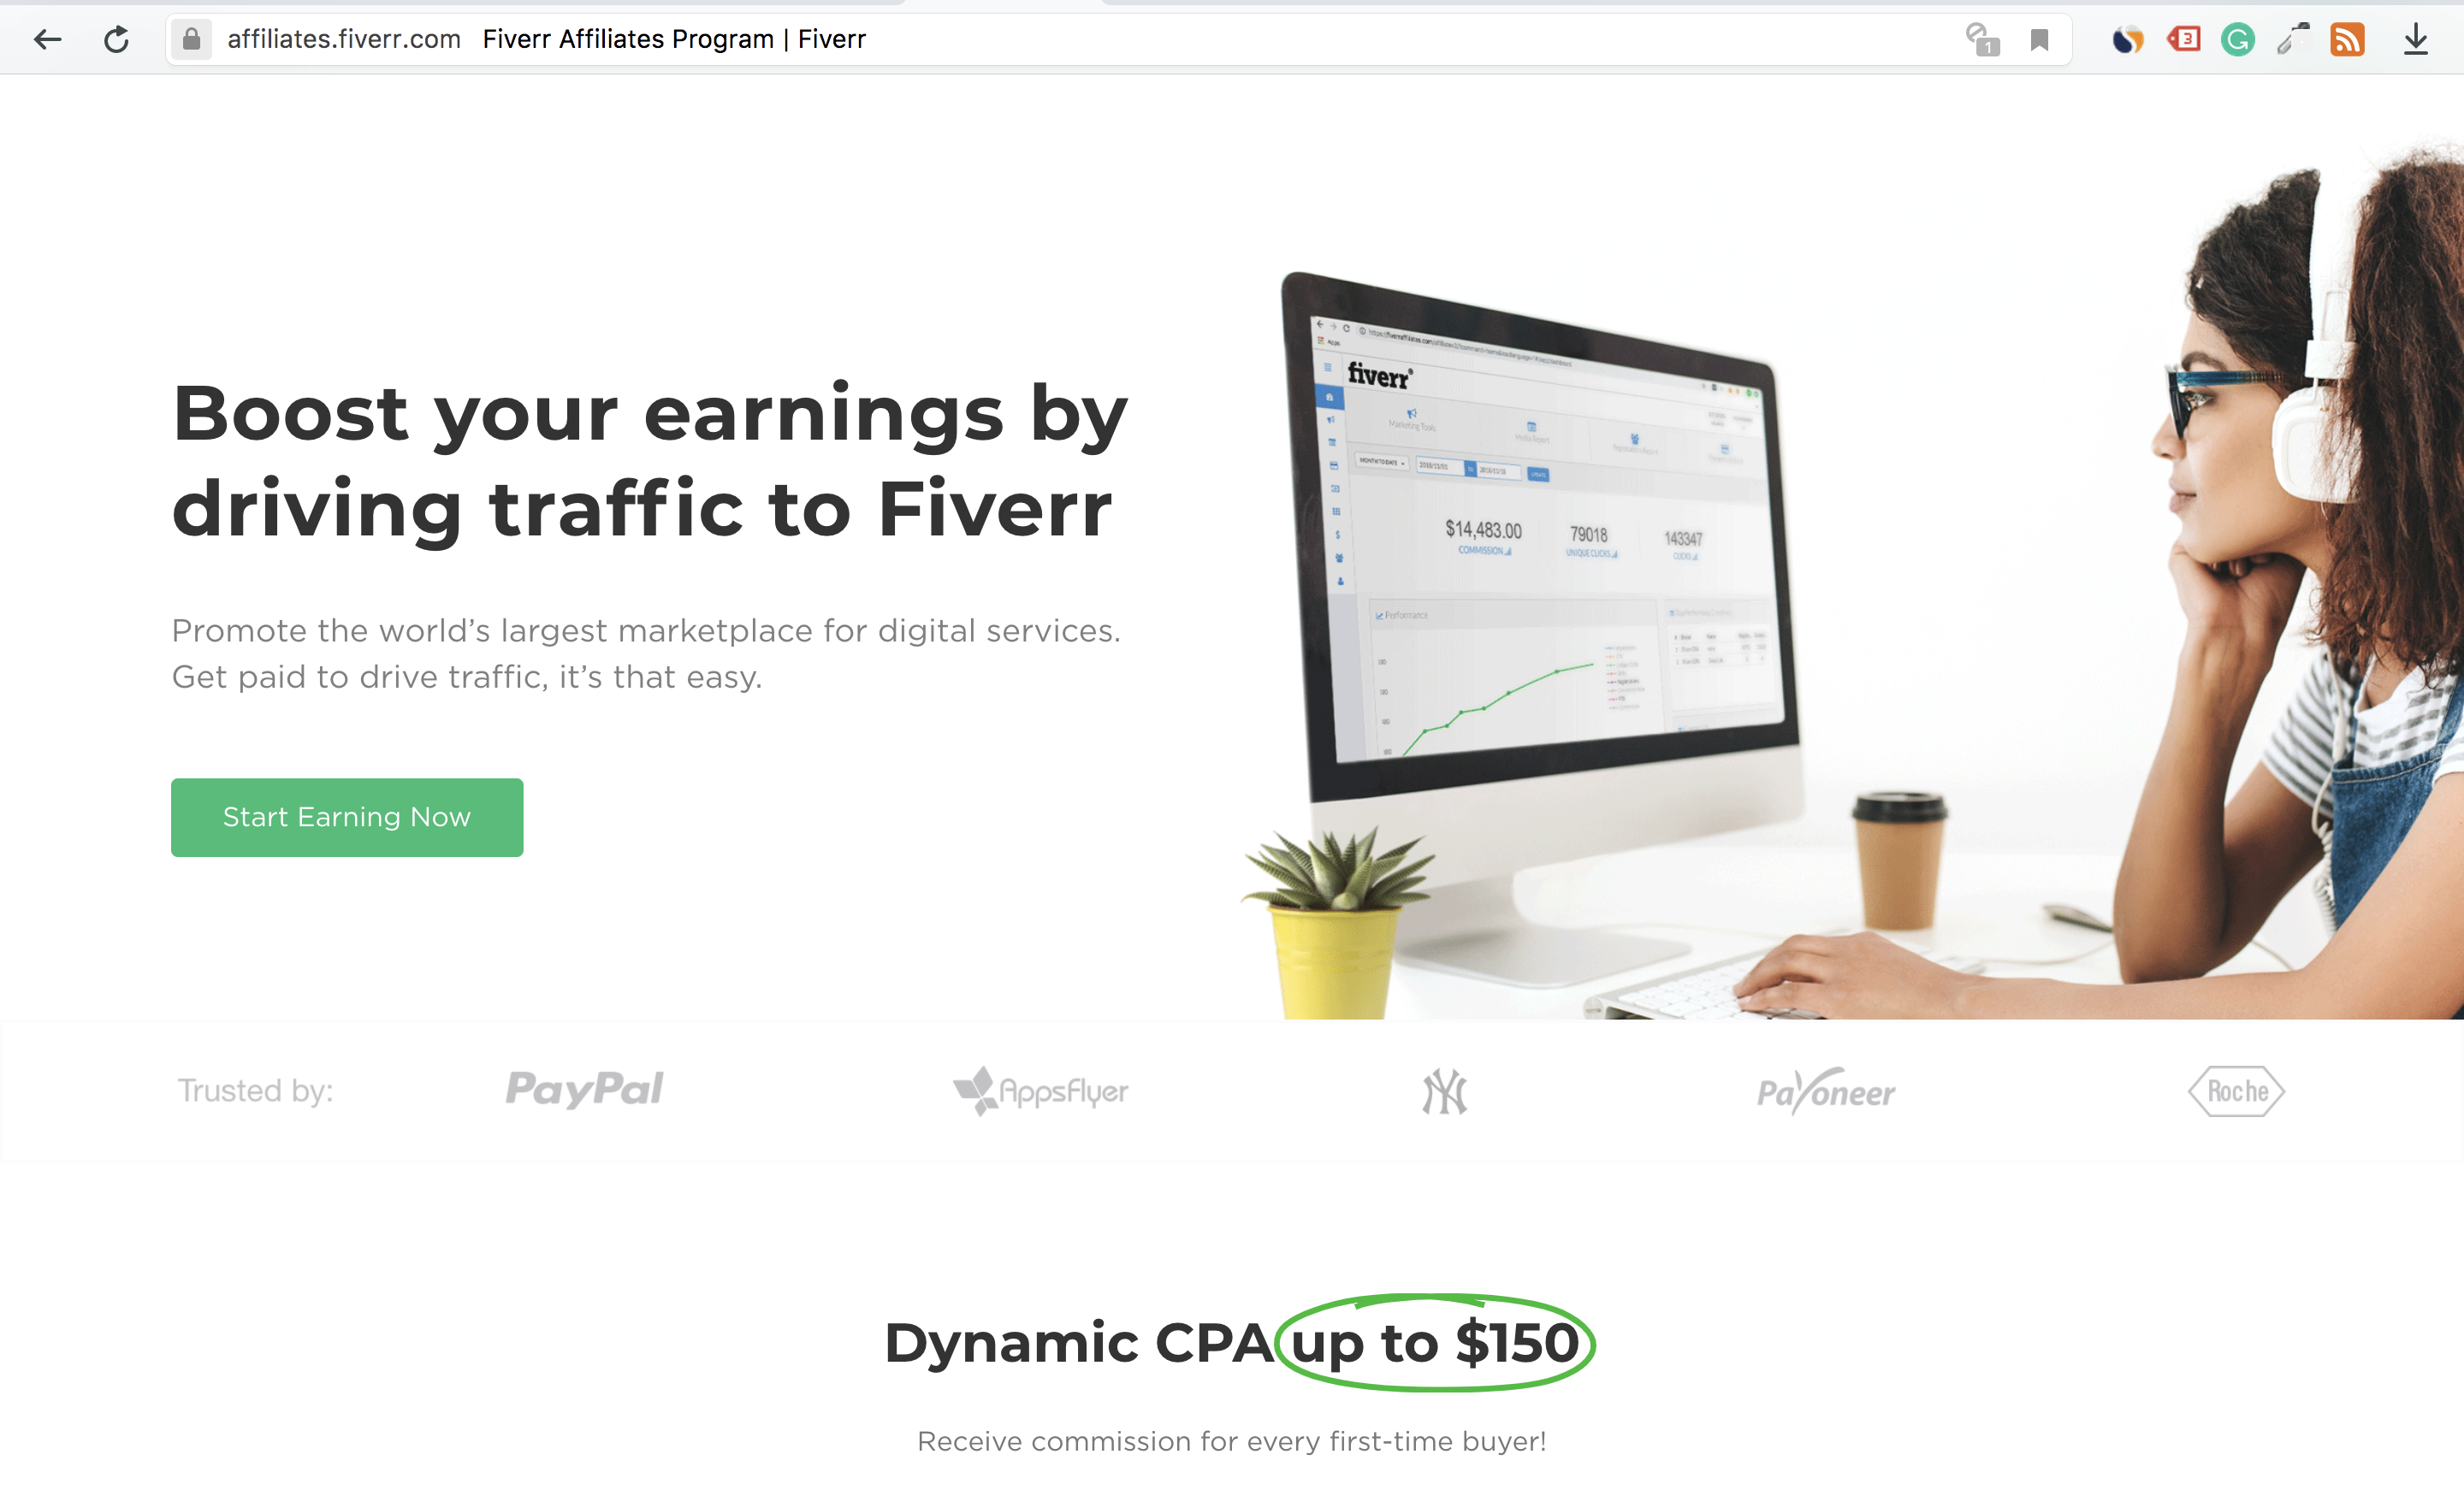 Fiverr Affiliate PRogram Sneak Peek